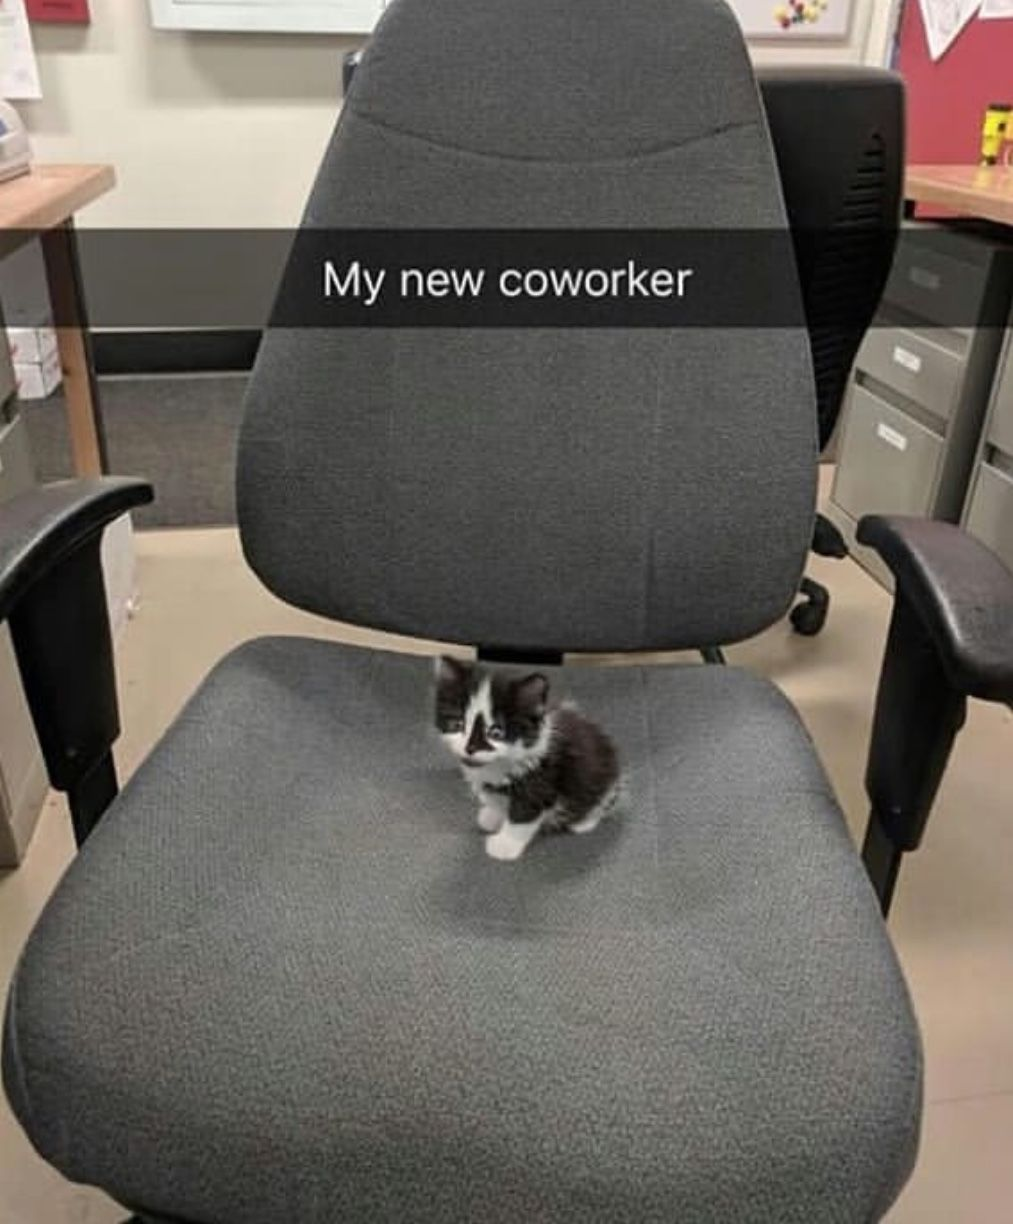 My new coworker